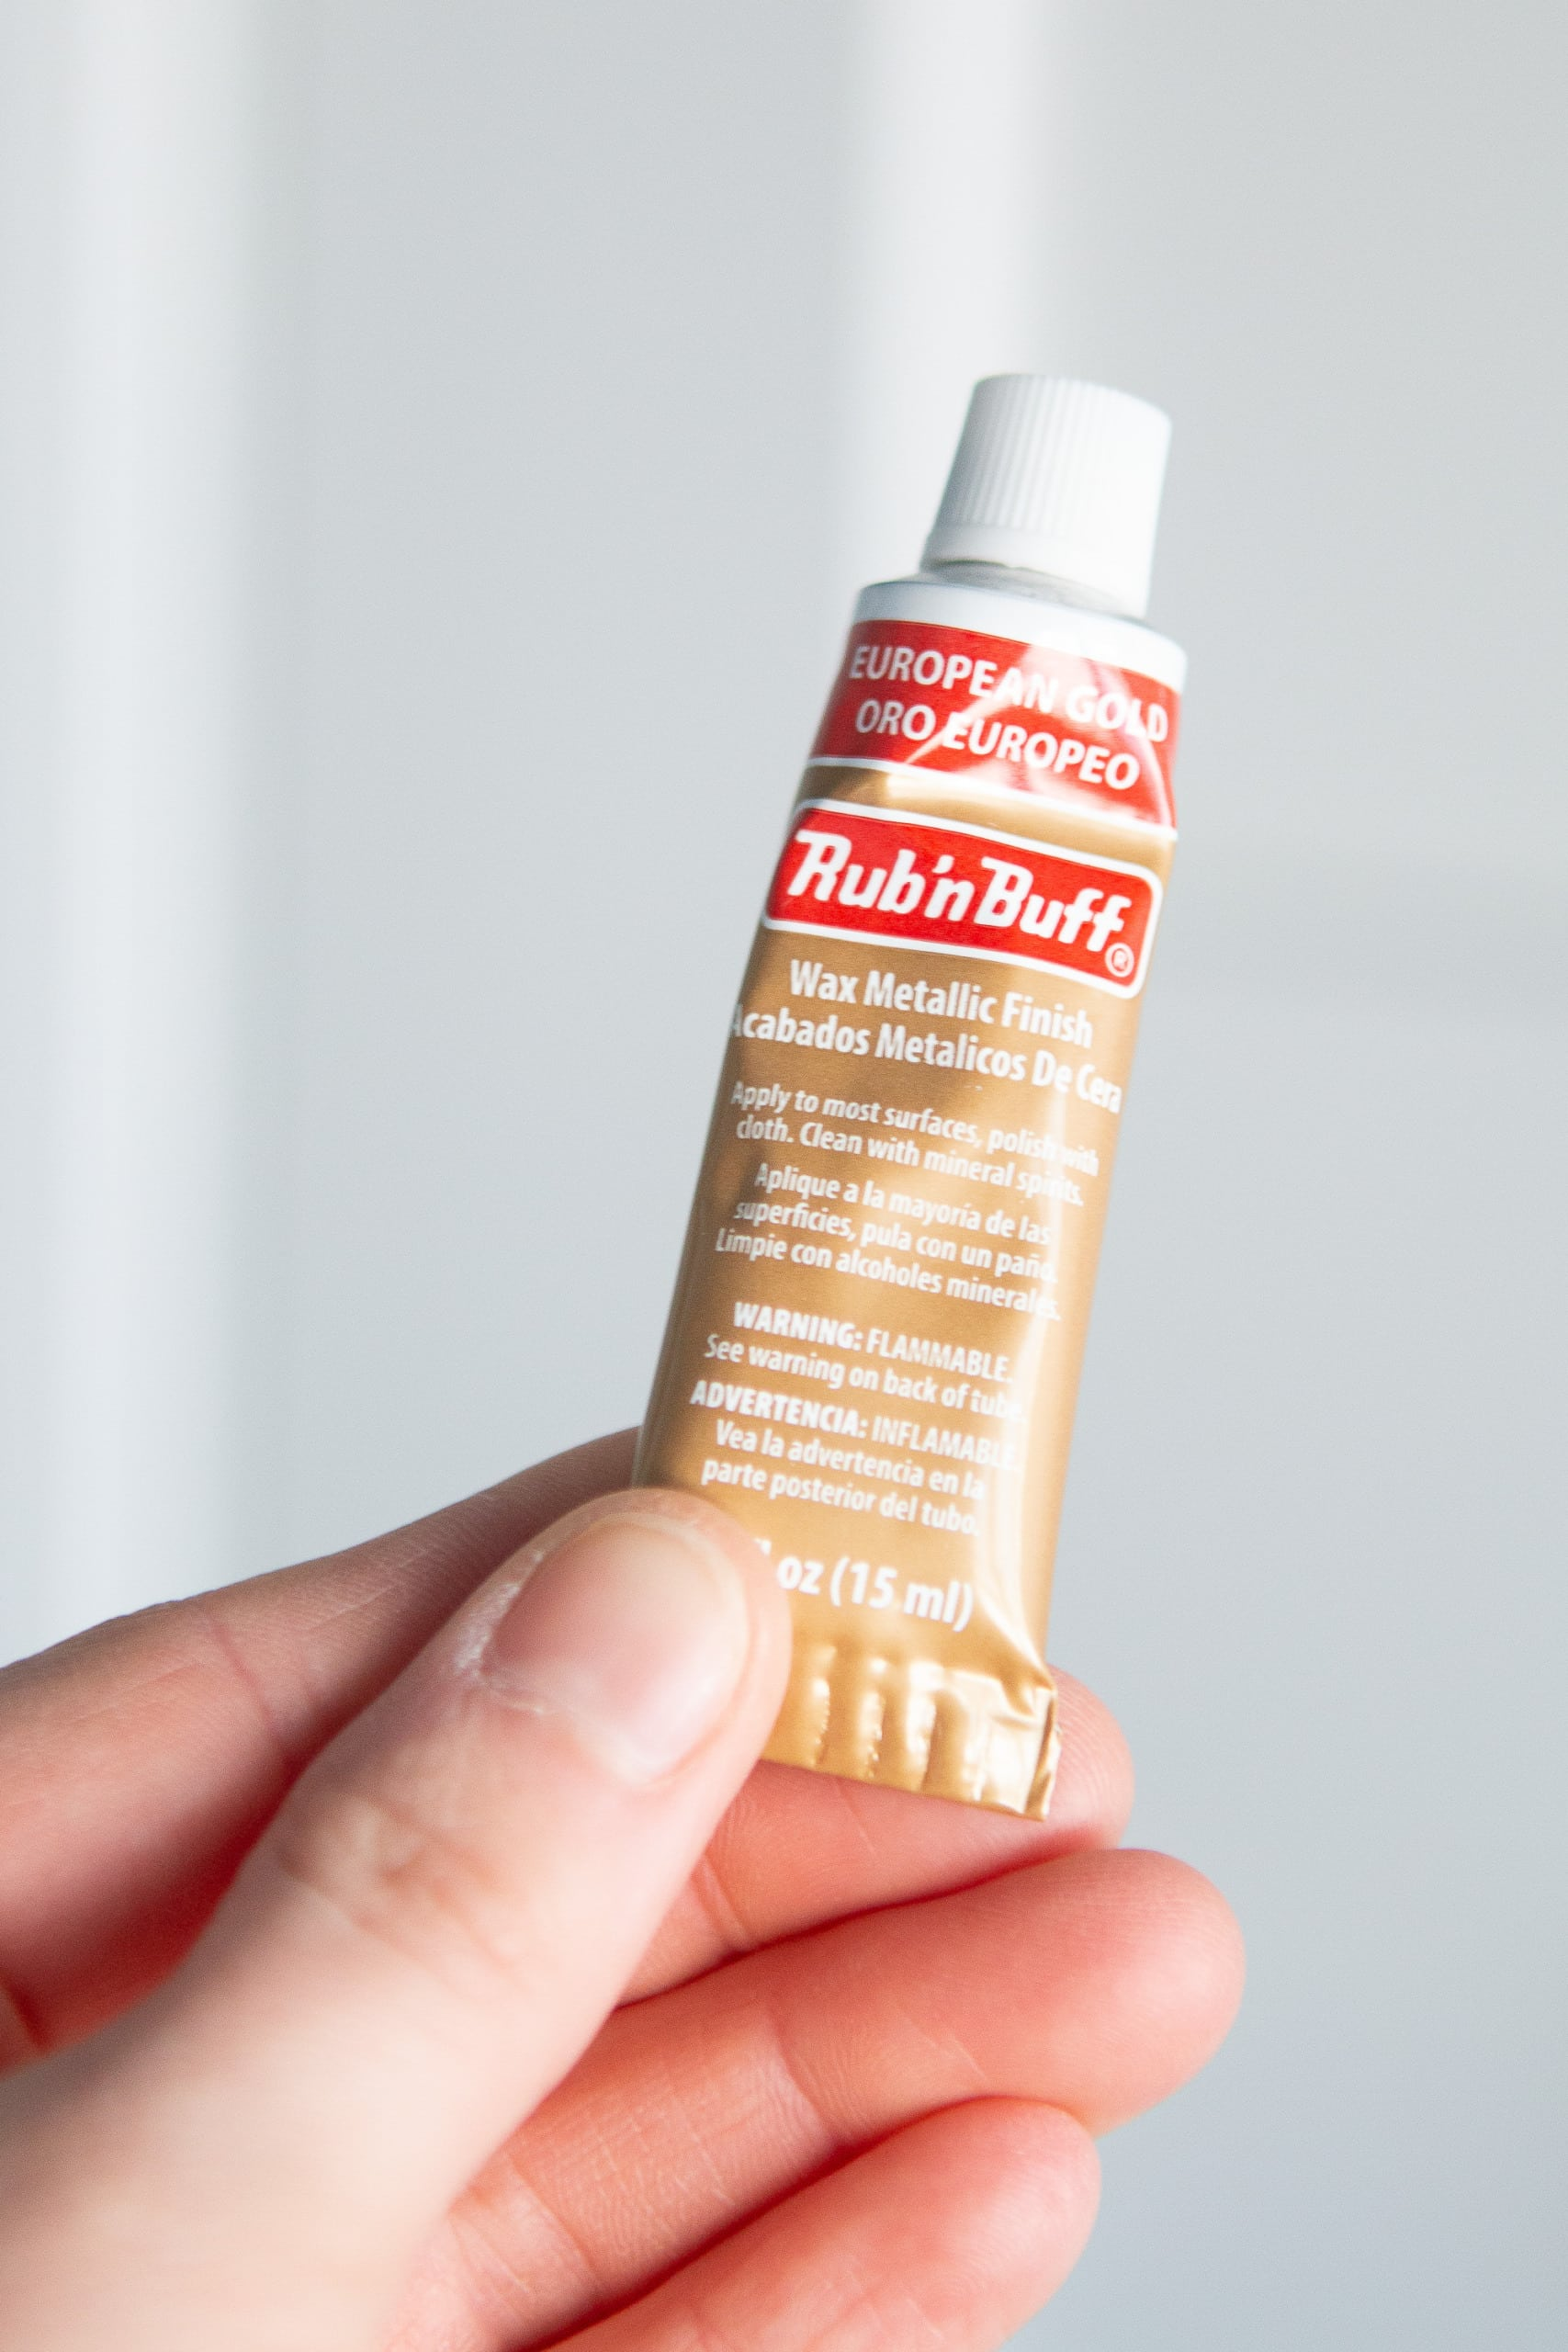 How to best use rub 'n buff for your home project